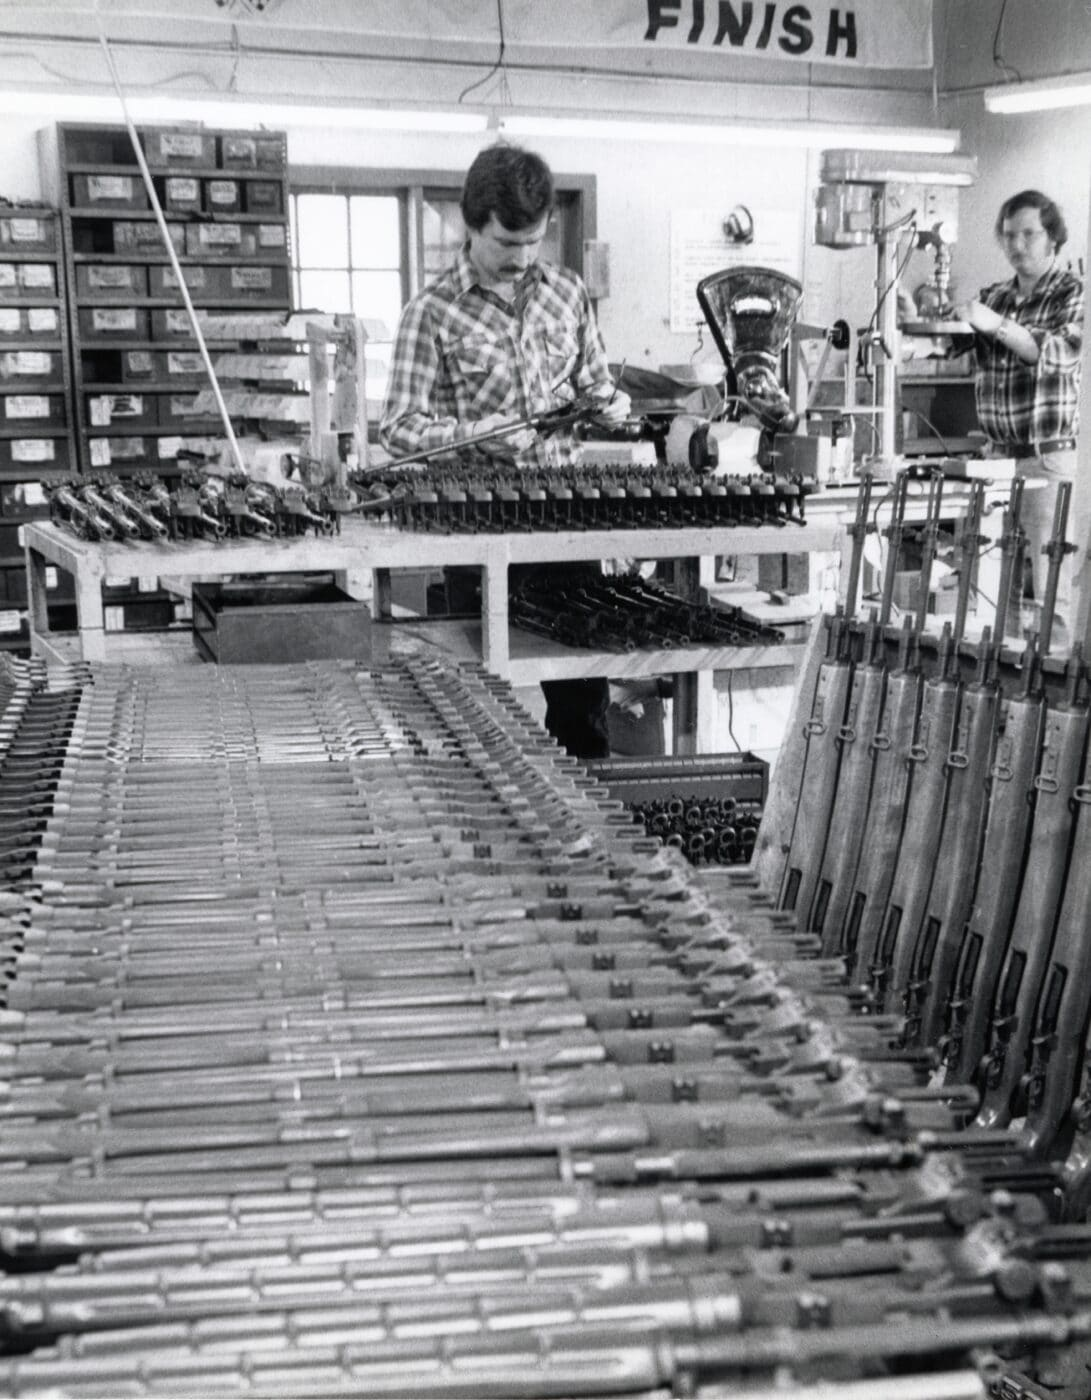 M1A assembly line at Springfield Armory